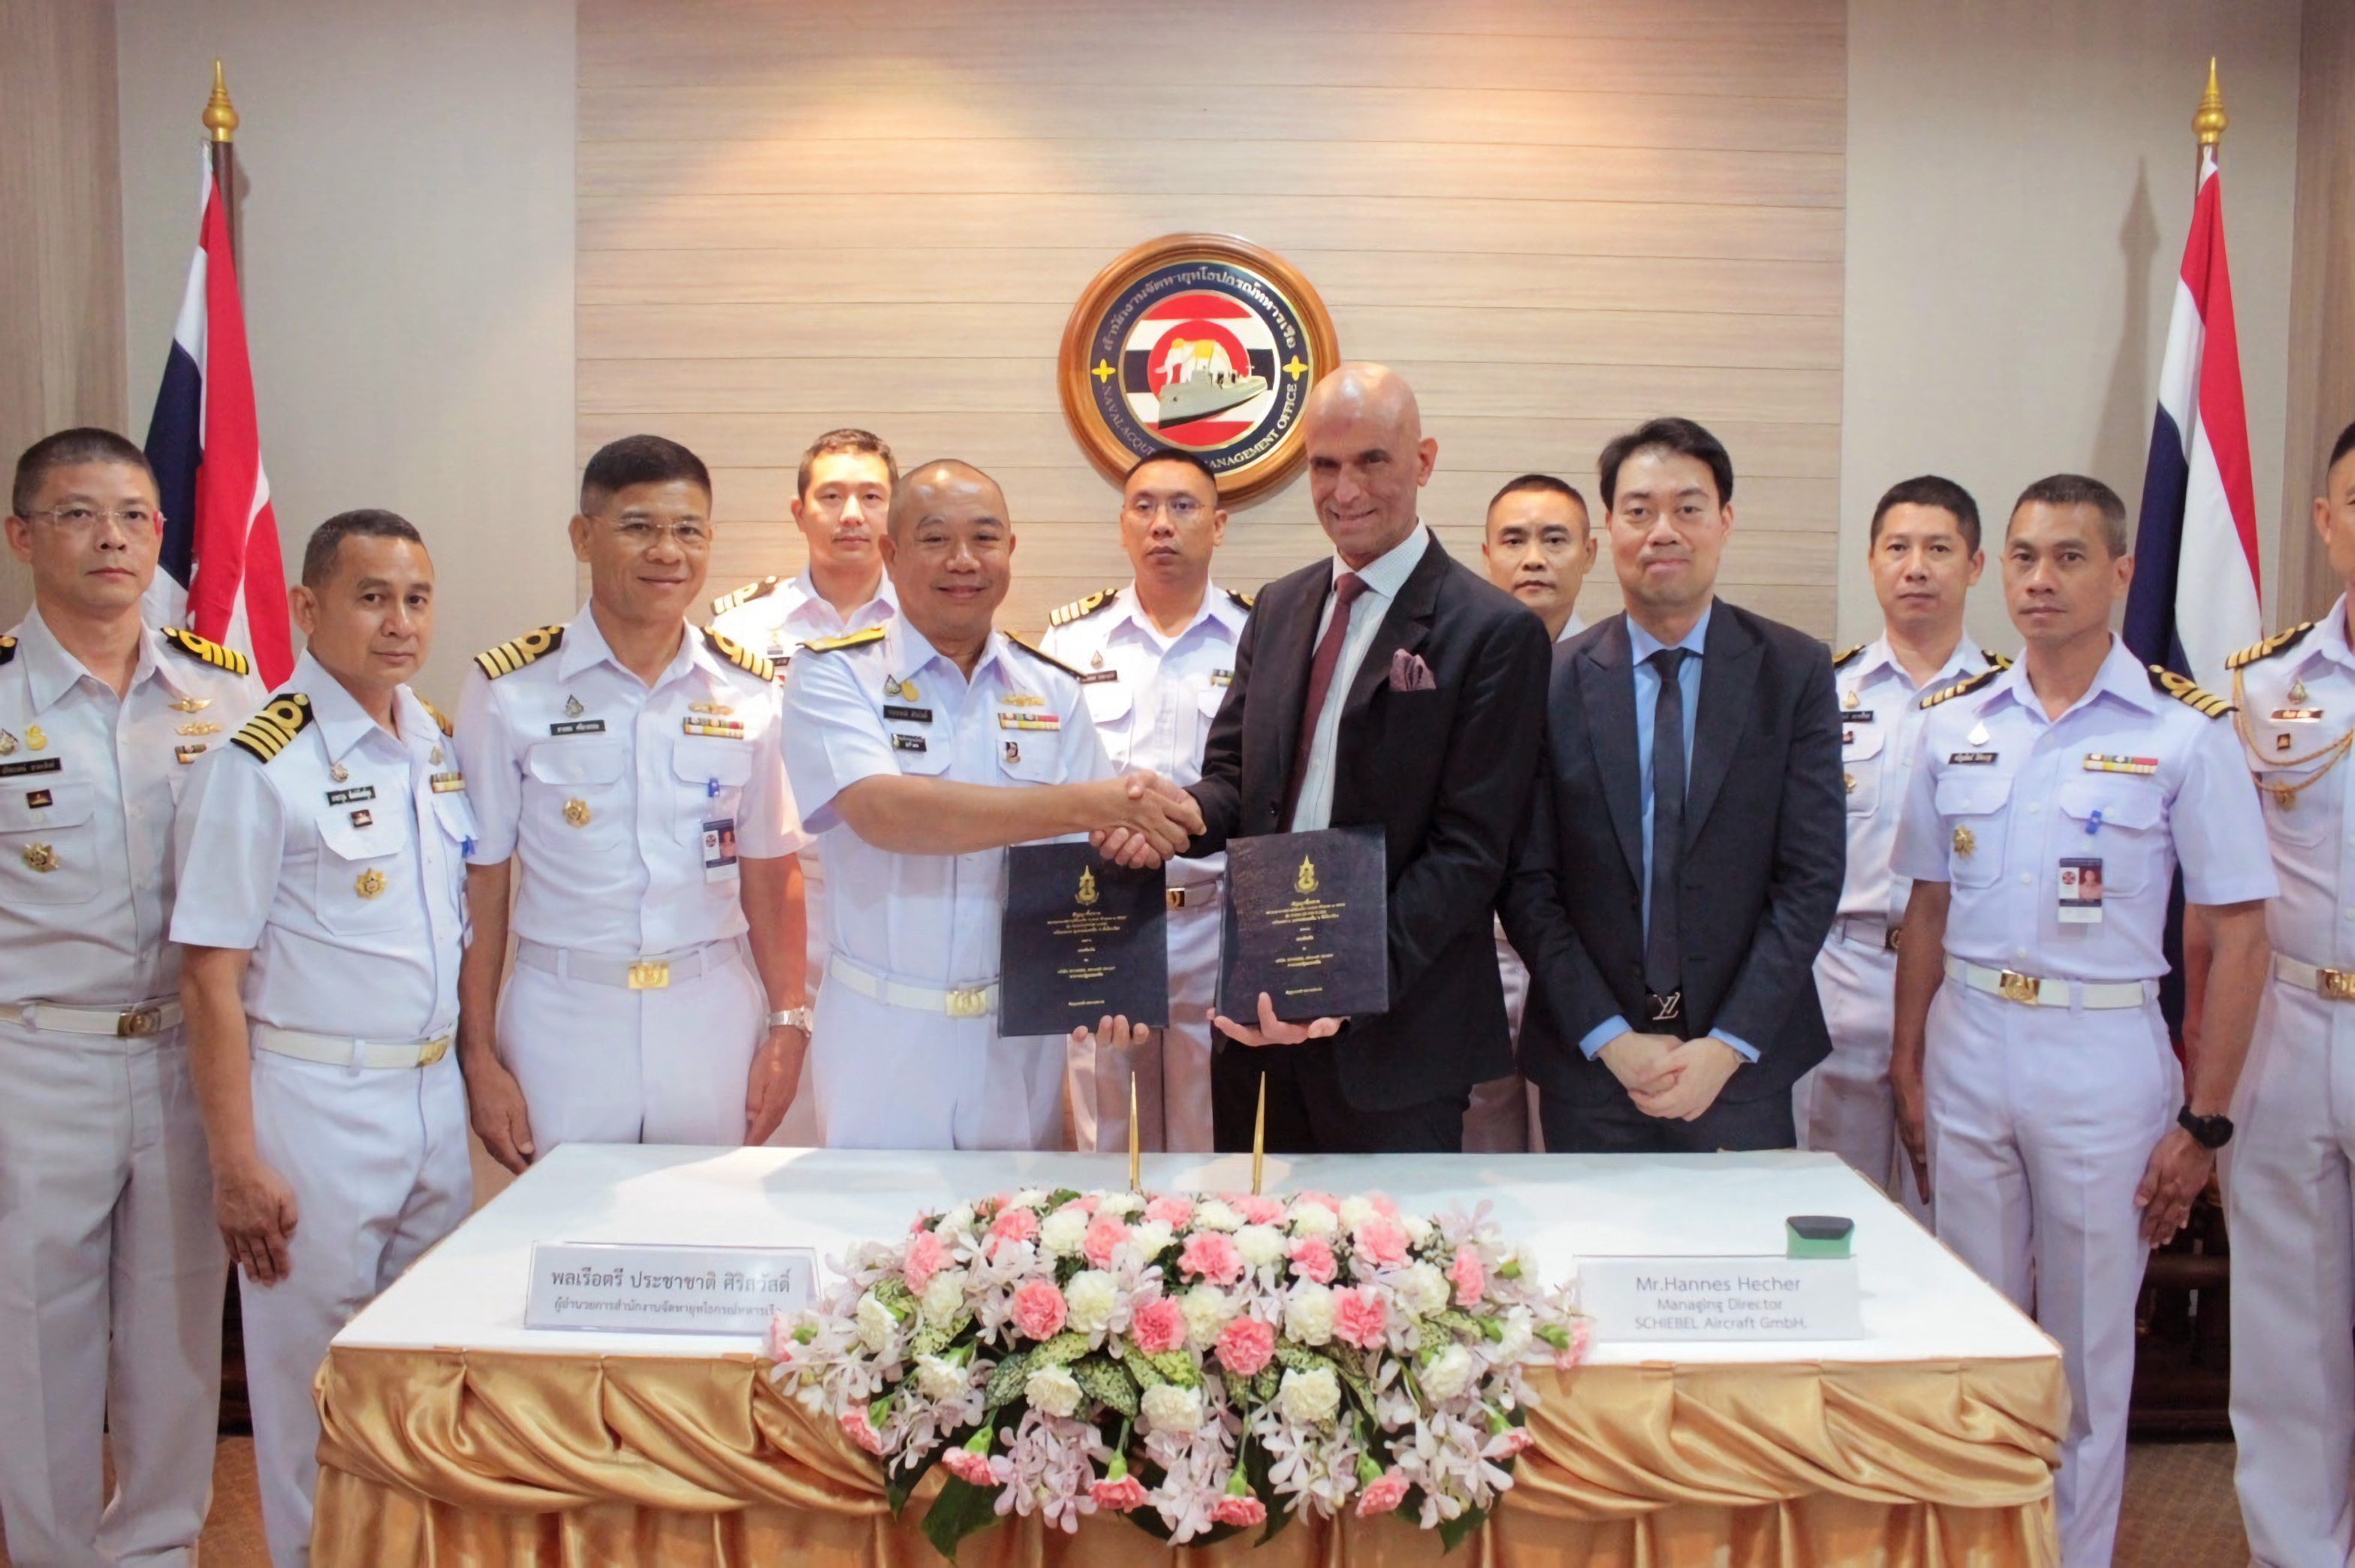 CAMCOPTER S-100 Contract Signing [Royal Thai Navy]